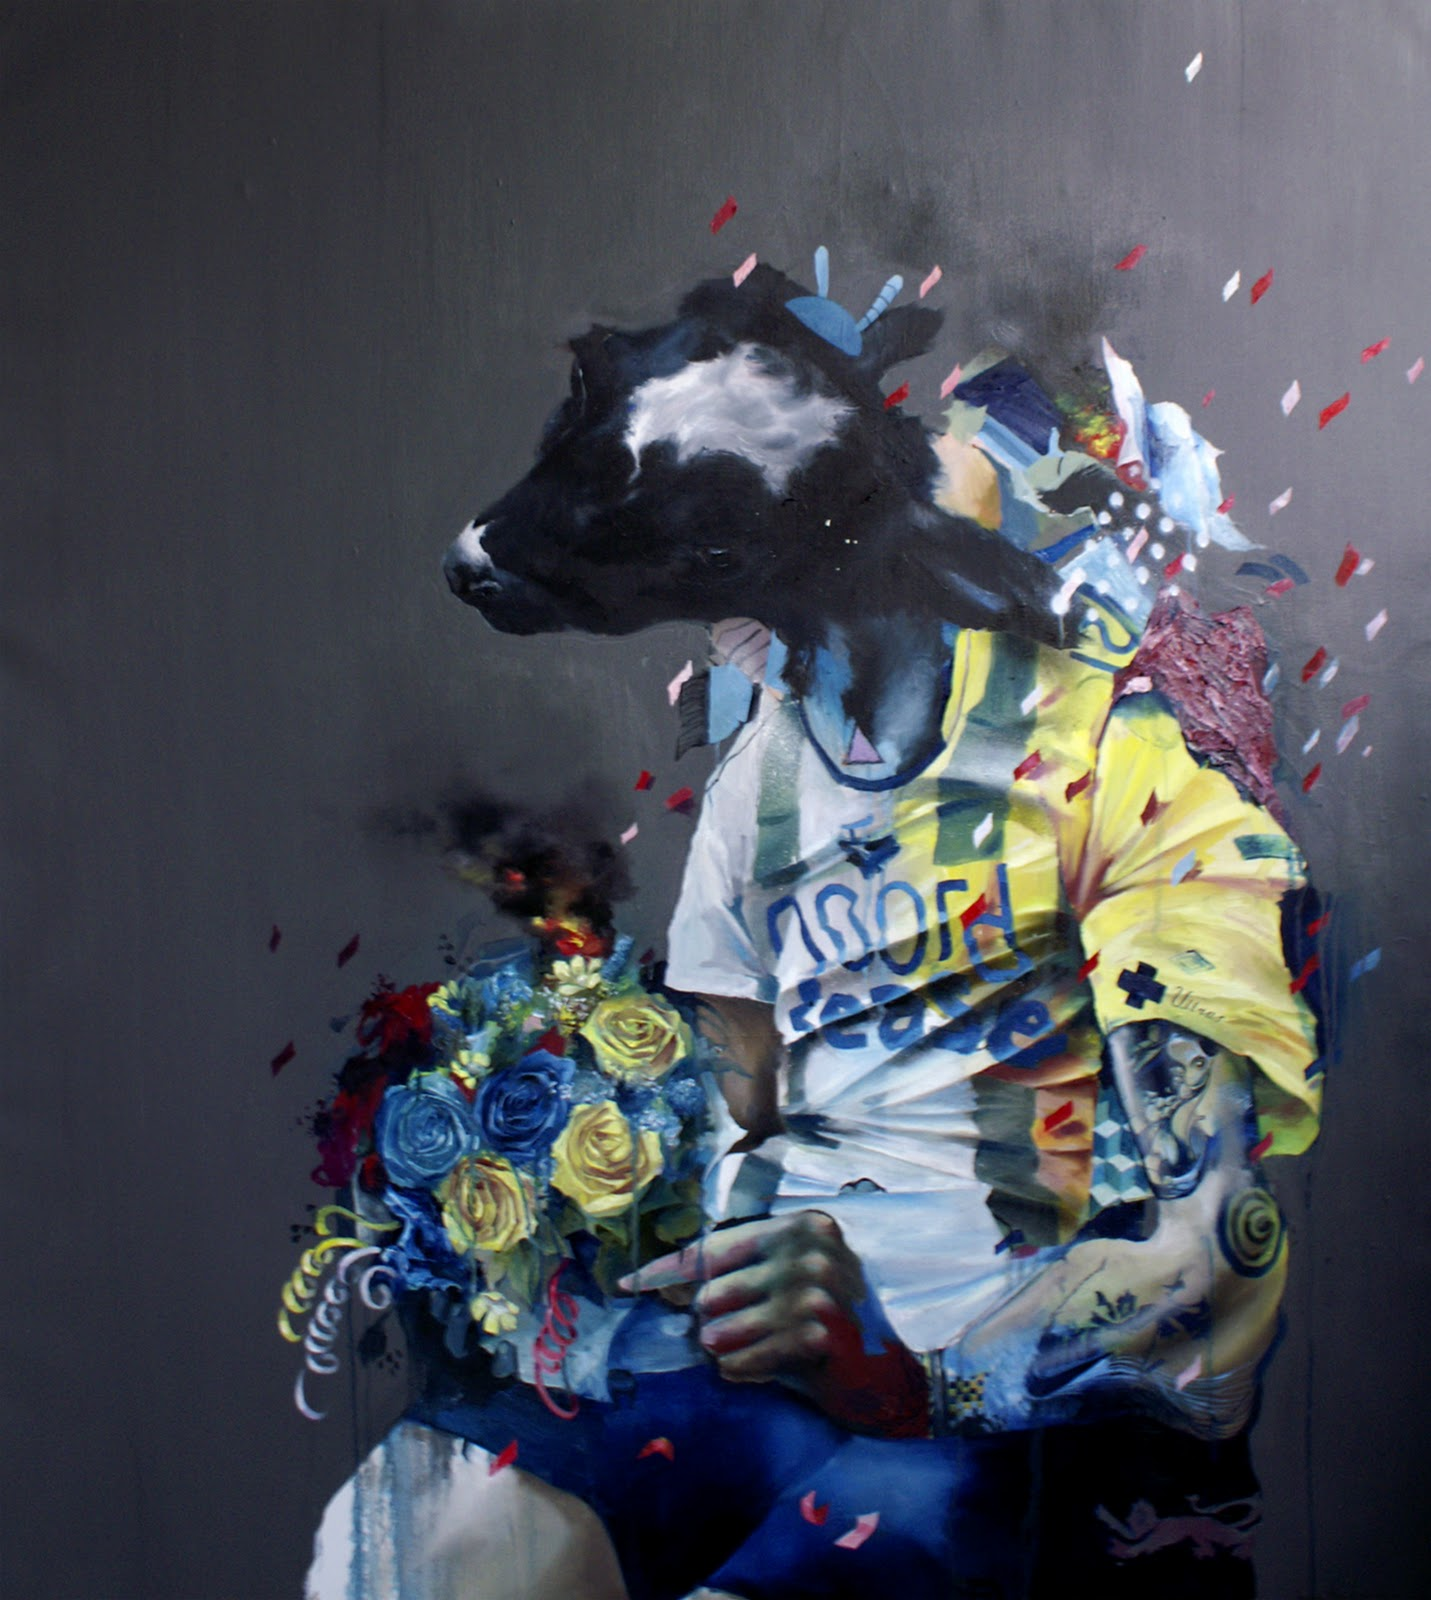 More Works by Joram Roukes: joram_1_20120921_1028660481.jpg